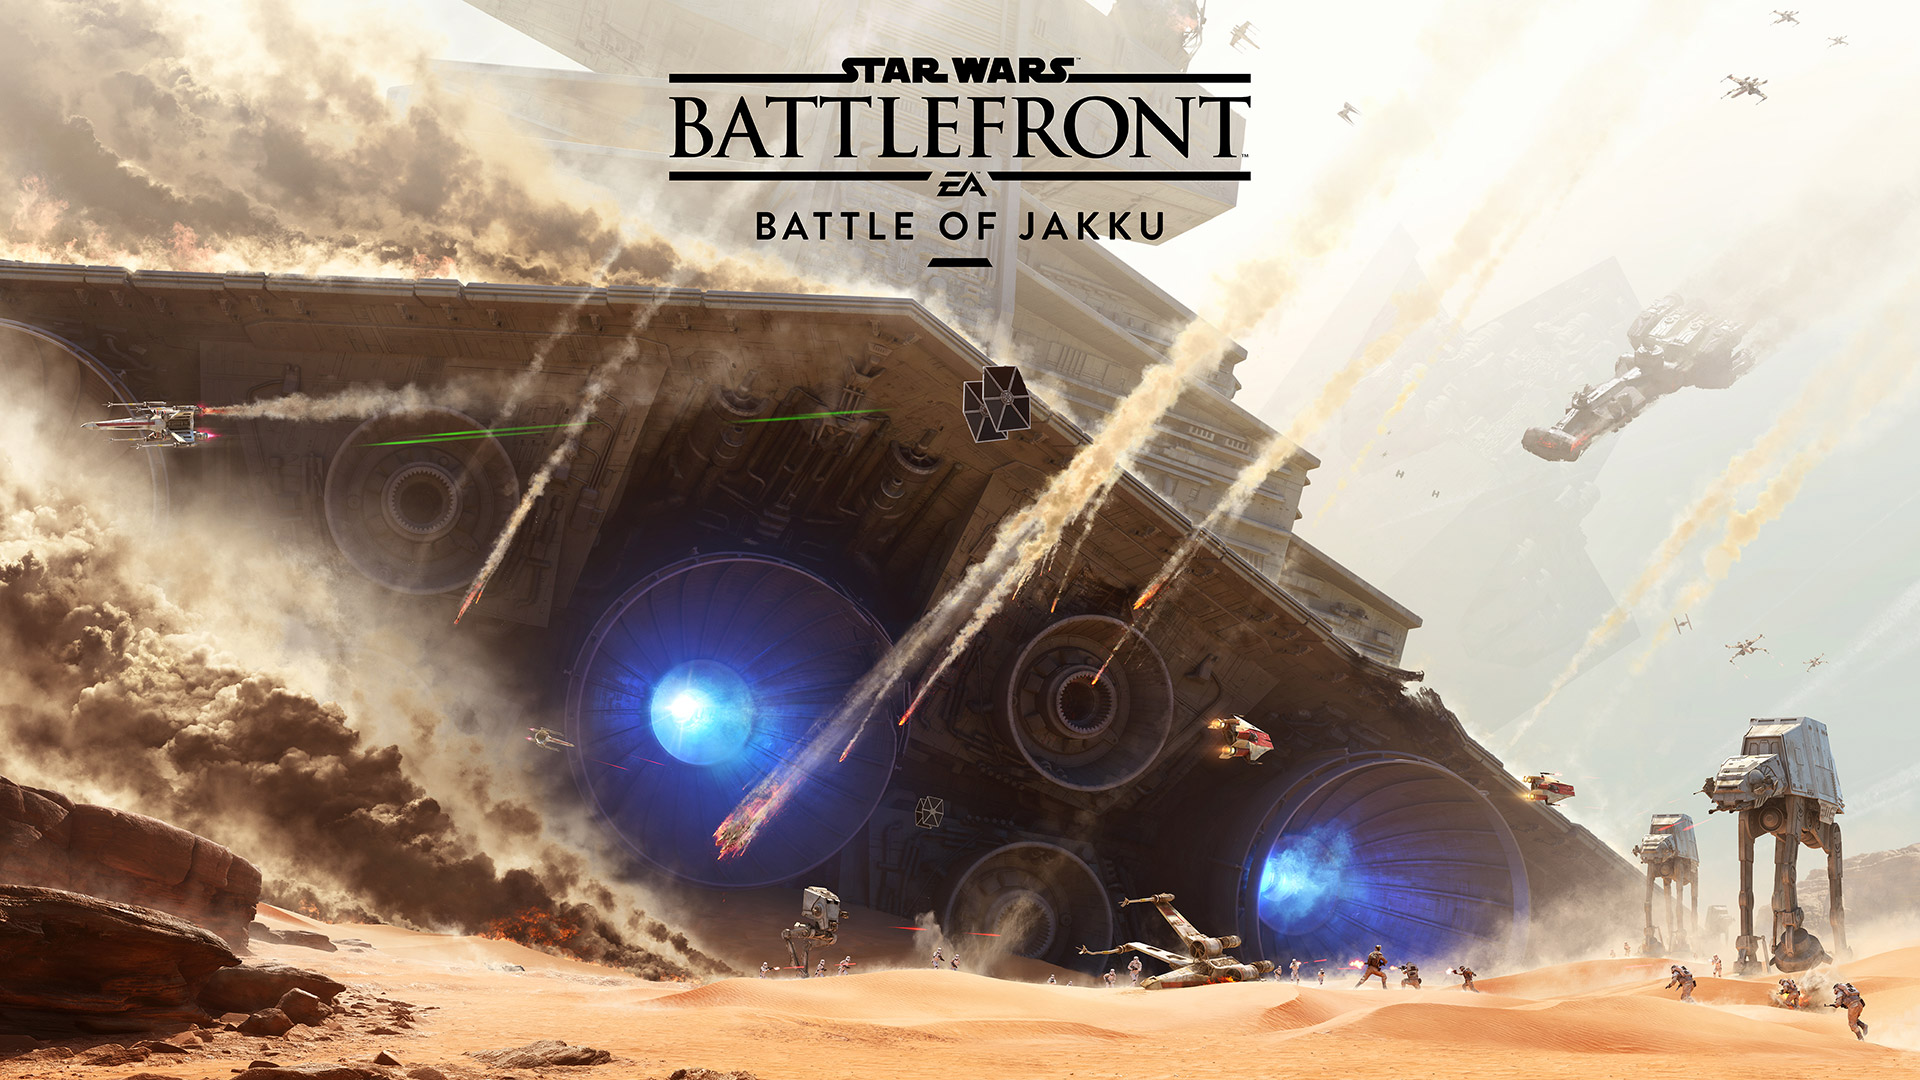 Details On Star Wars Battlefront Battle Of Jakku DLC